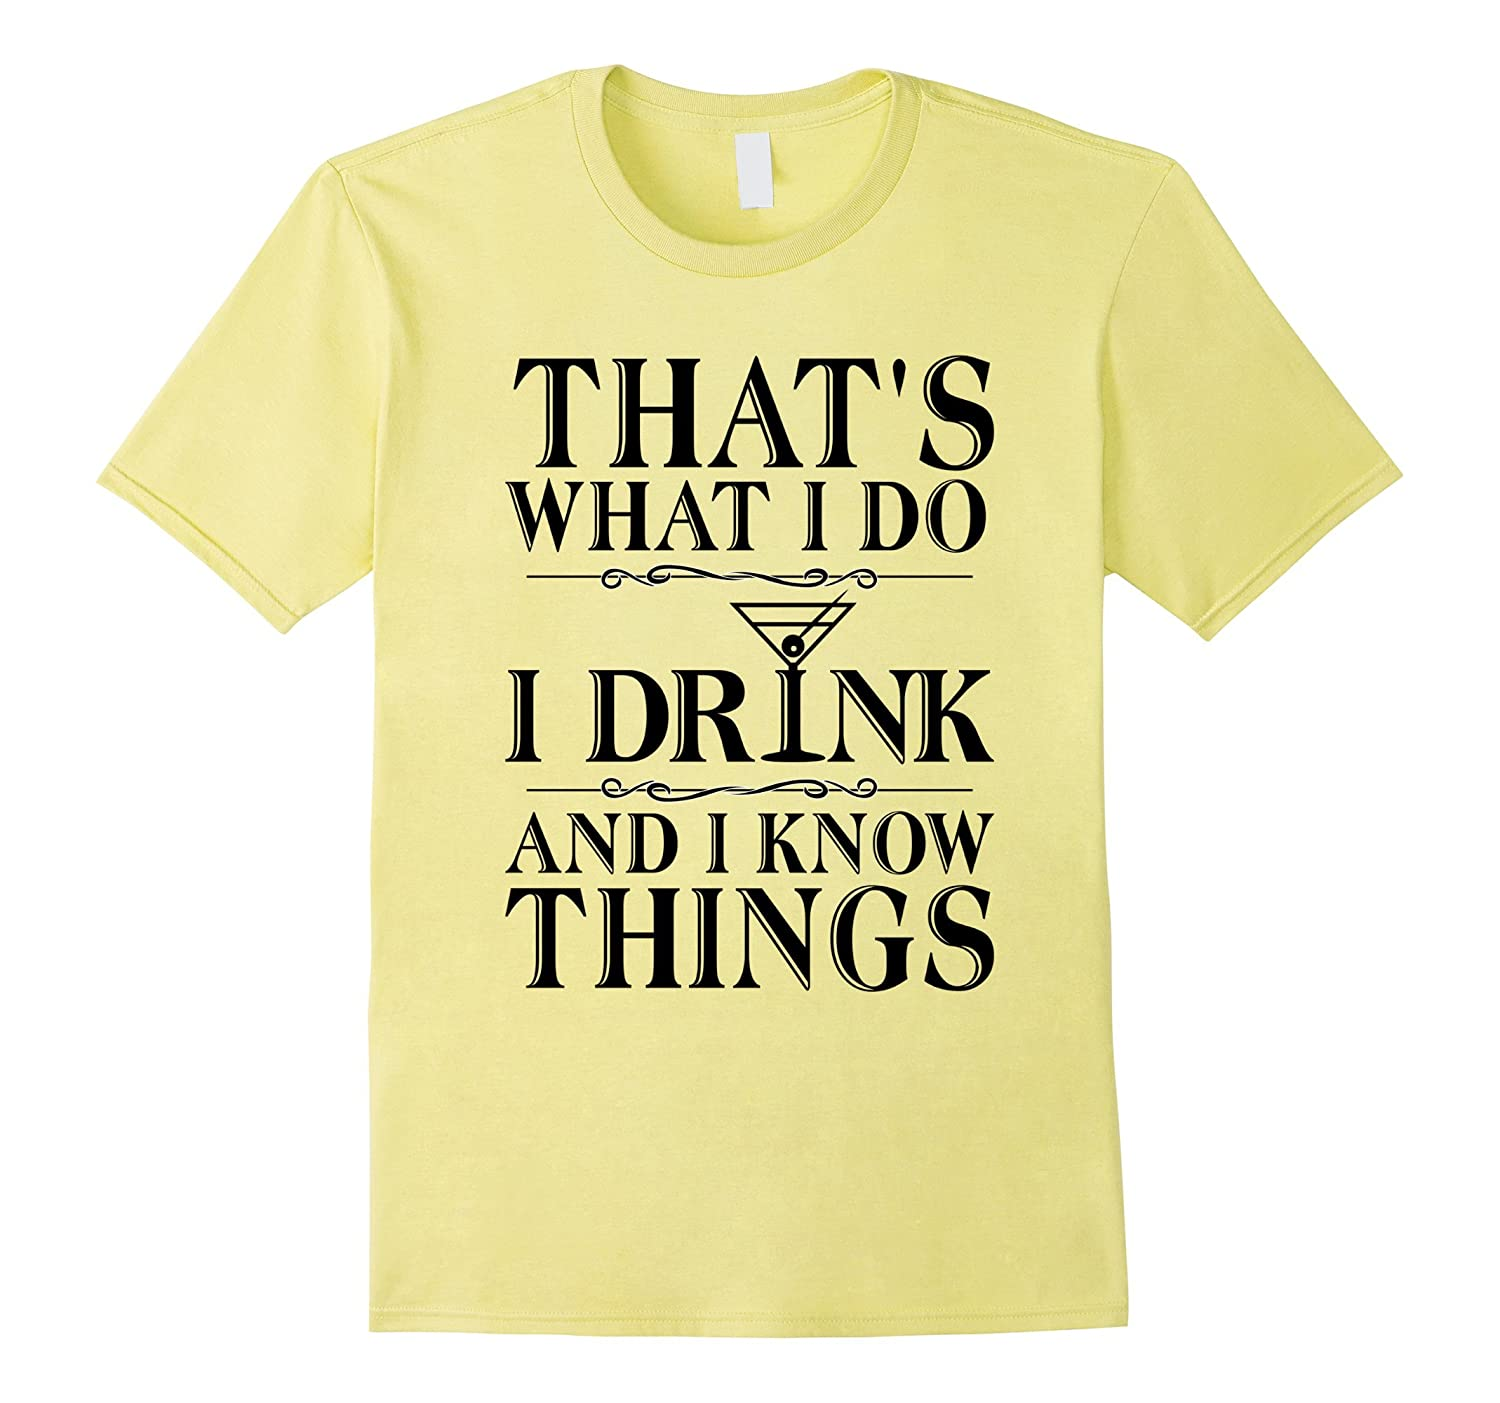 thats what i do i drink and i know things T shirt